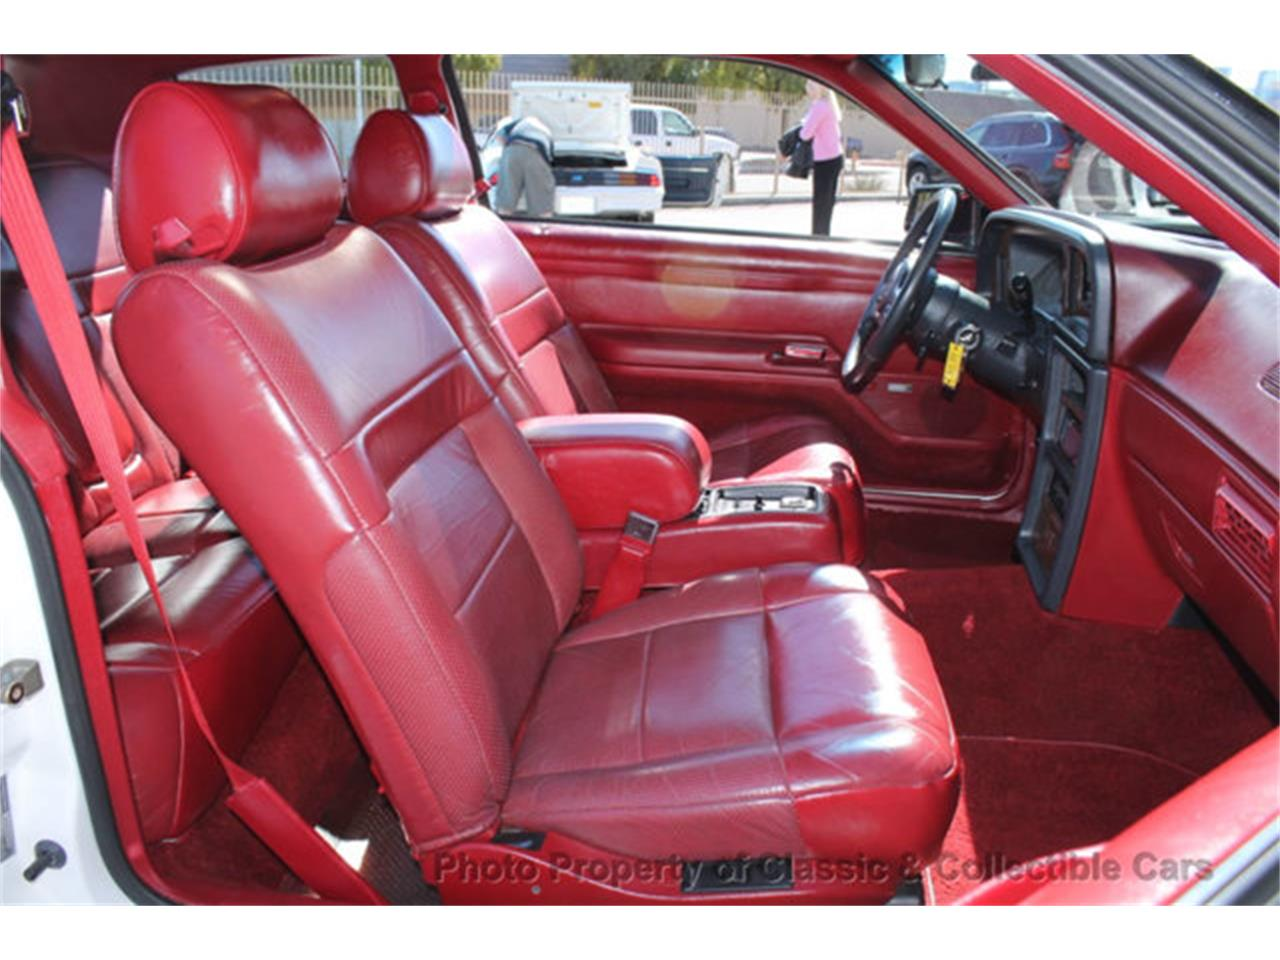 1988 Tiffany Classic for sale in Las Vegas, NV – photo 14